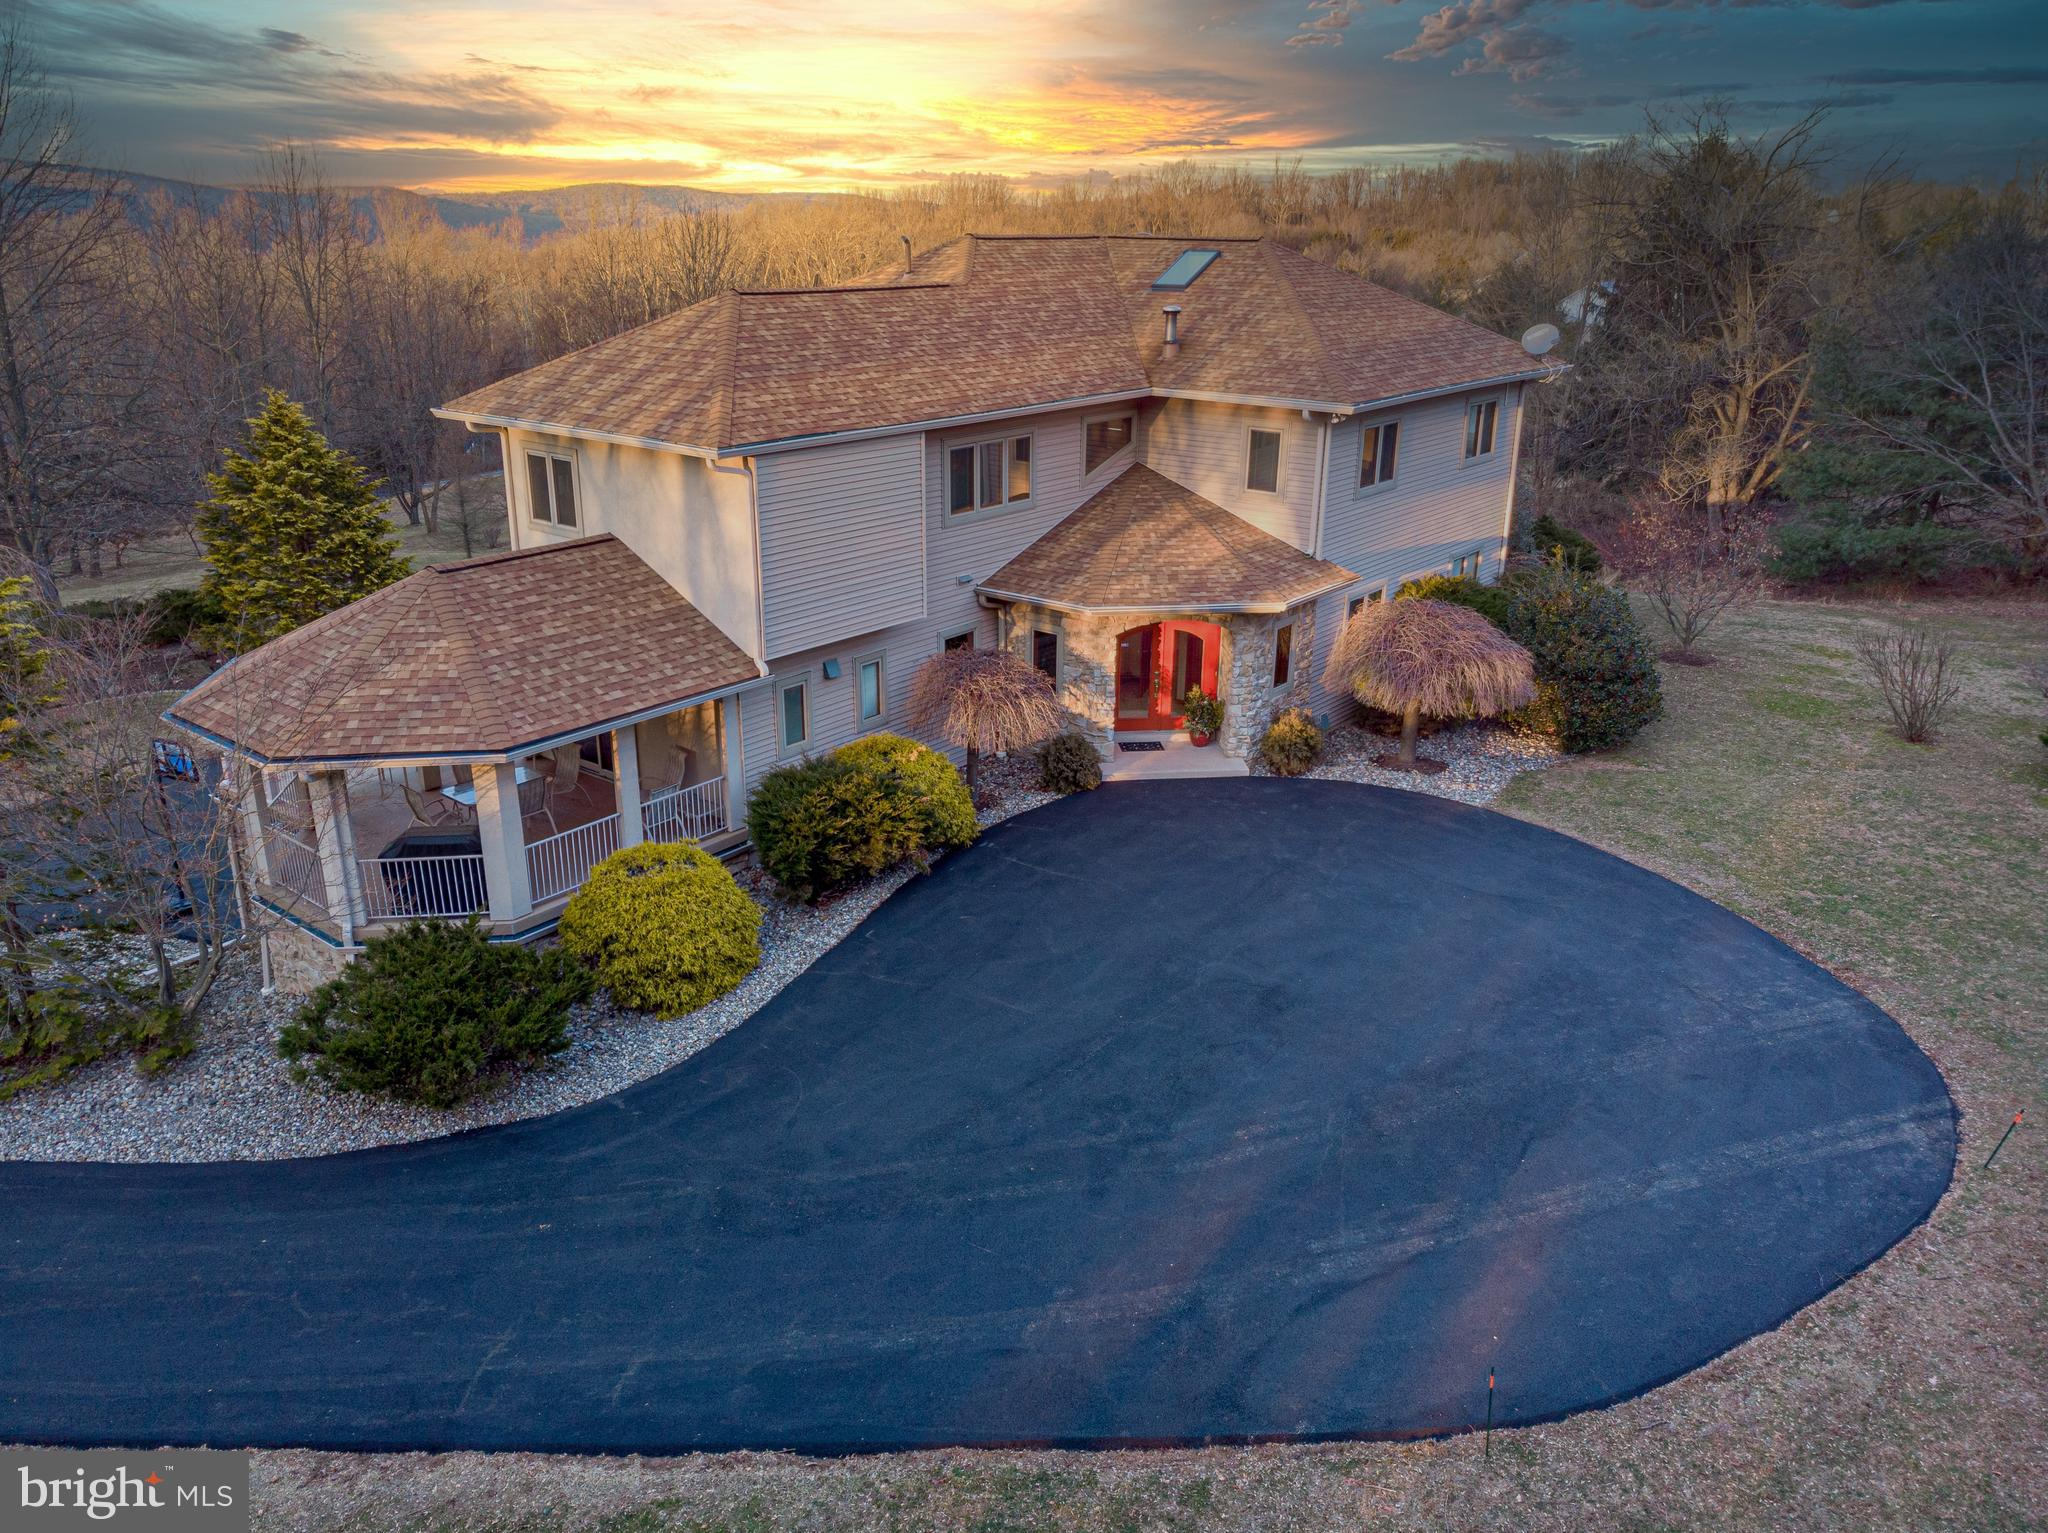 5610 LIMEPORT ROAD, EMMAUS, PA 18049